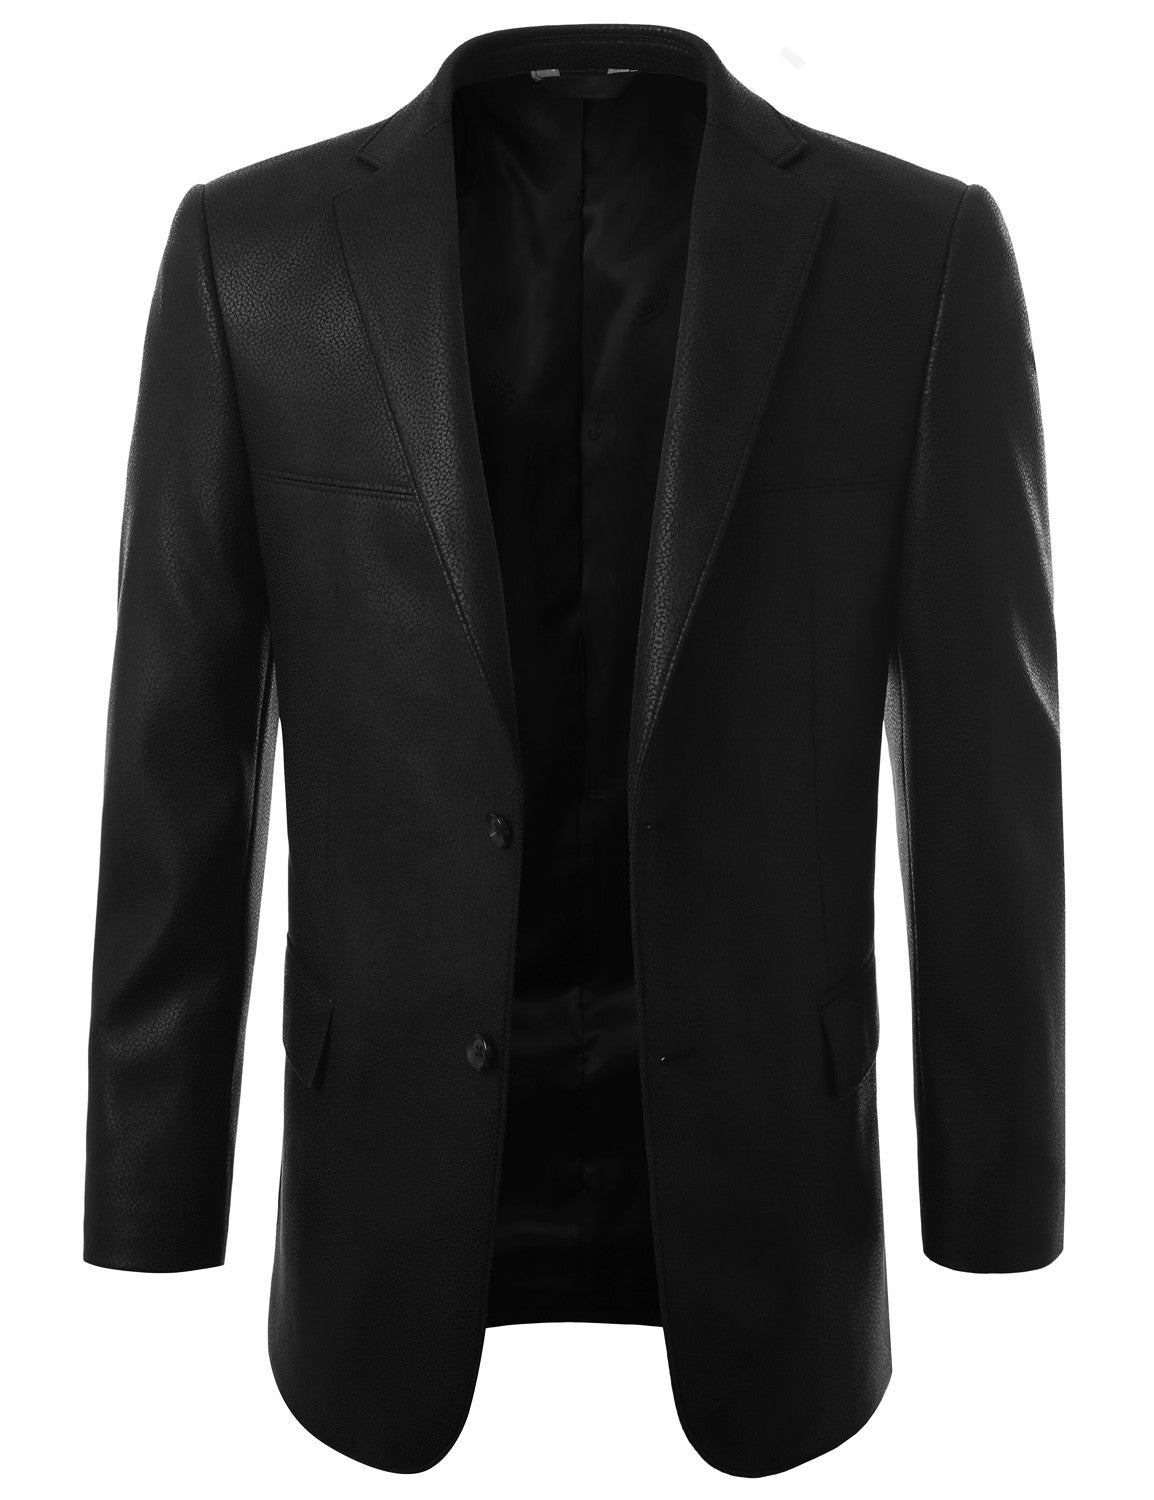 Leather Look Modern Fit Coat Jacket- MONDAYSUIT